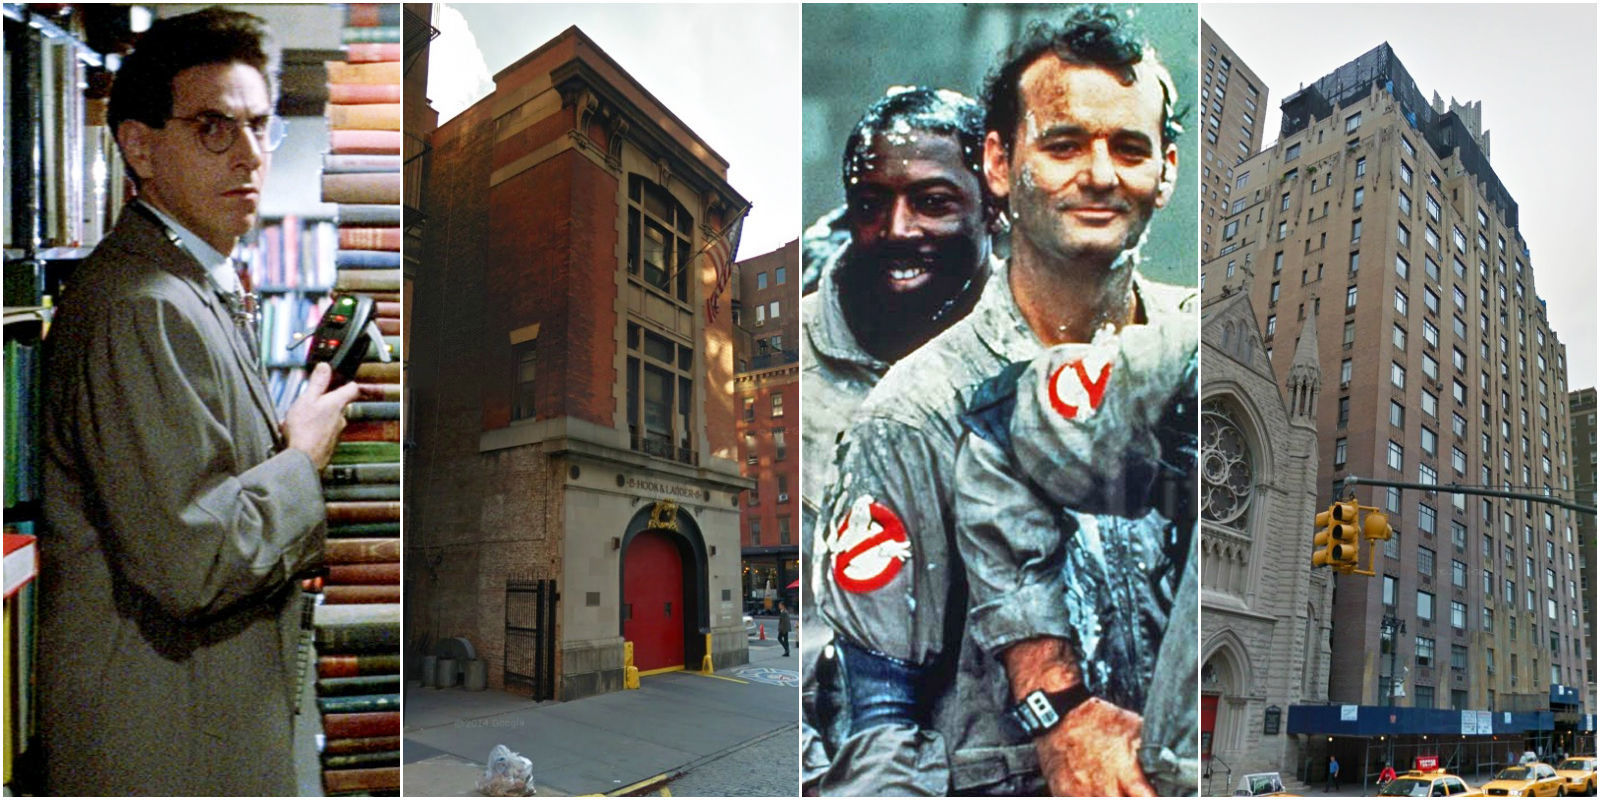 Dana S Apartment Building Ghostbusters how to tour new york city like a ghostbuster – from dana's central